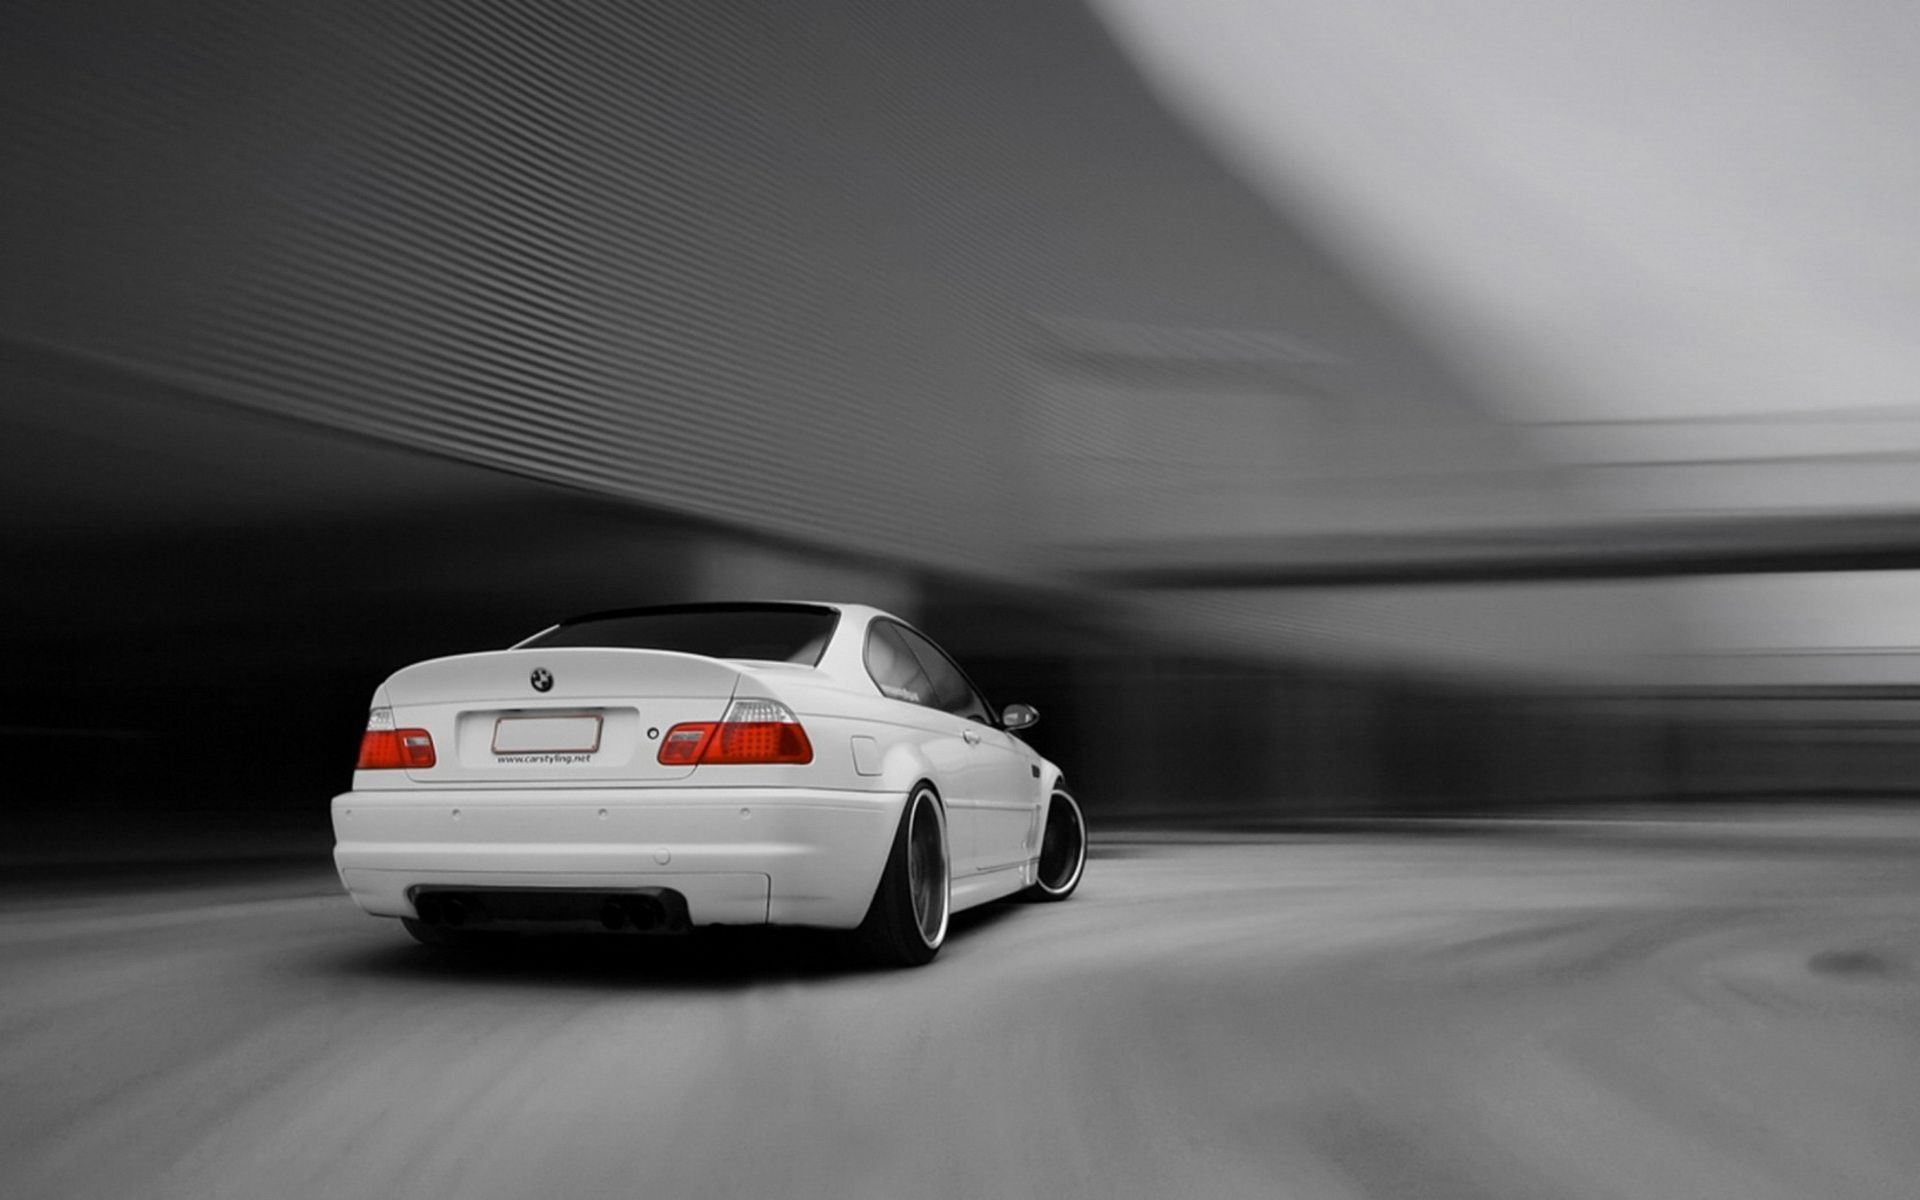 1920x1200 Bmw E46 M3 Iphone Wallpaper Image 66 4